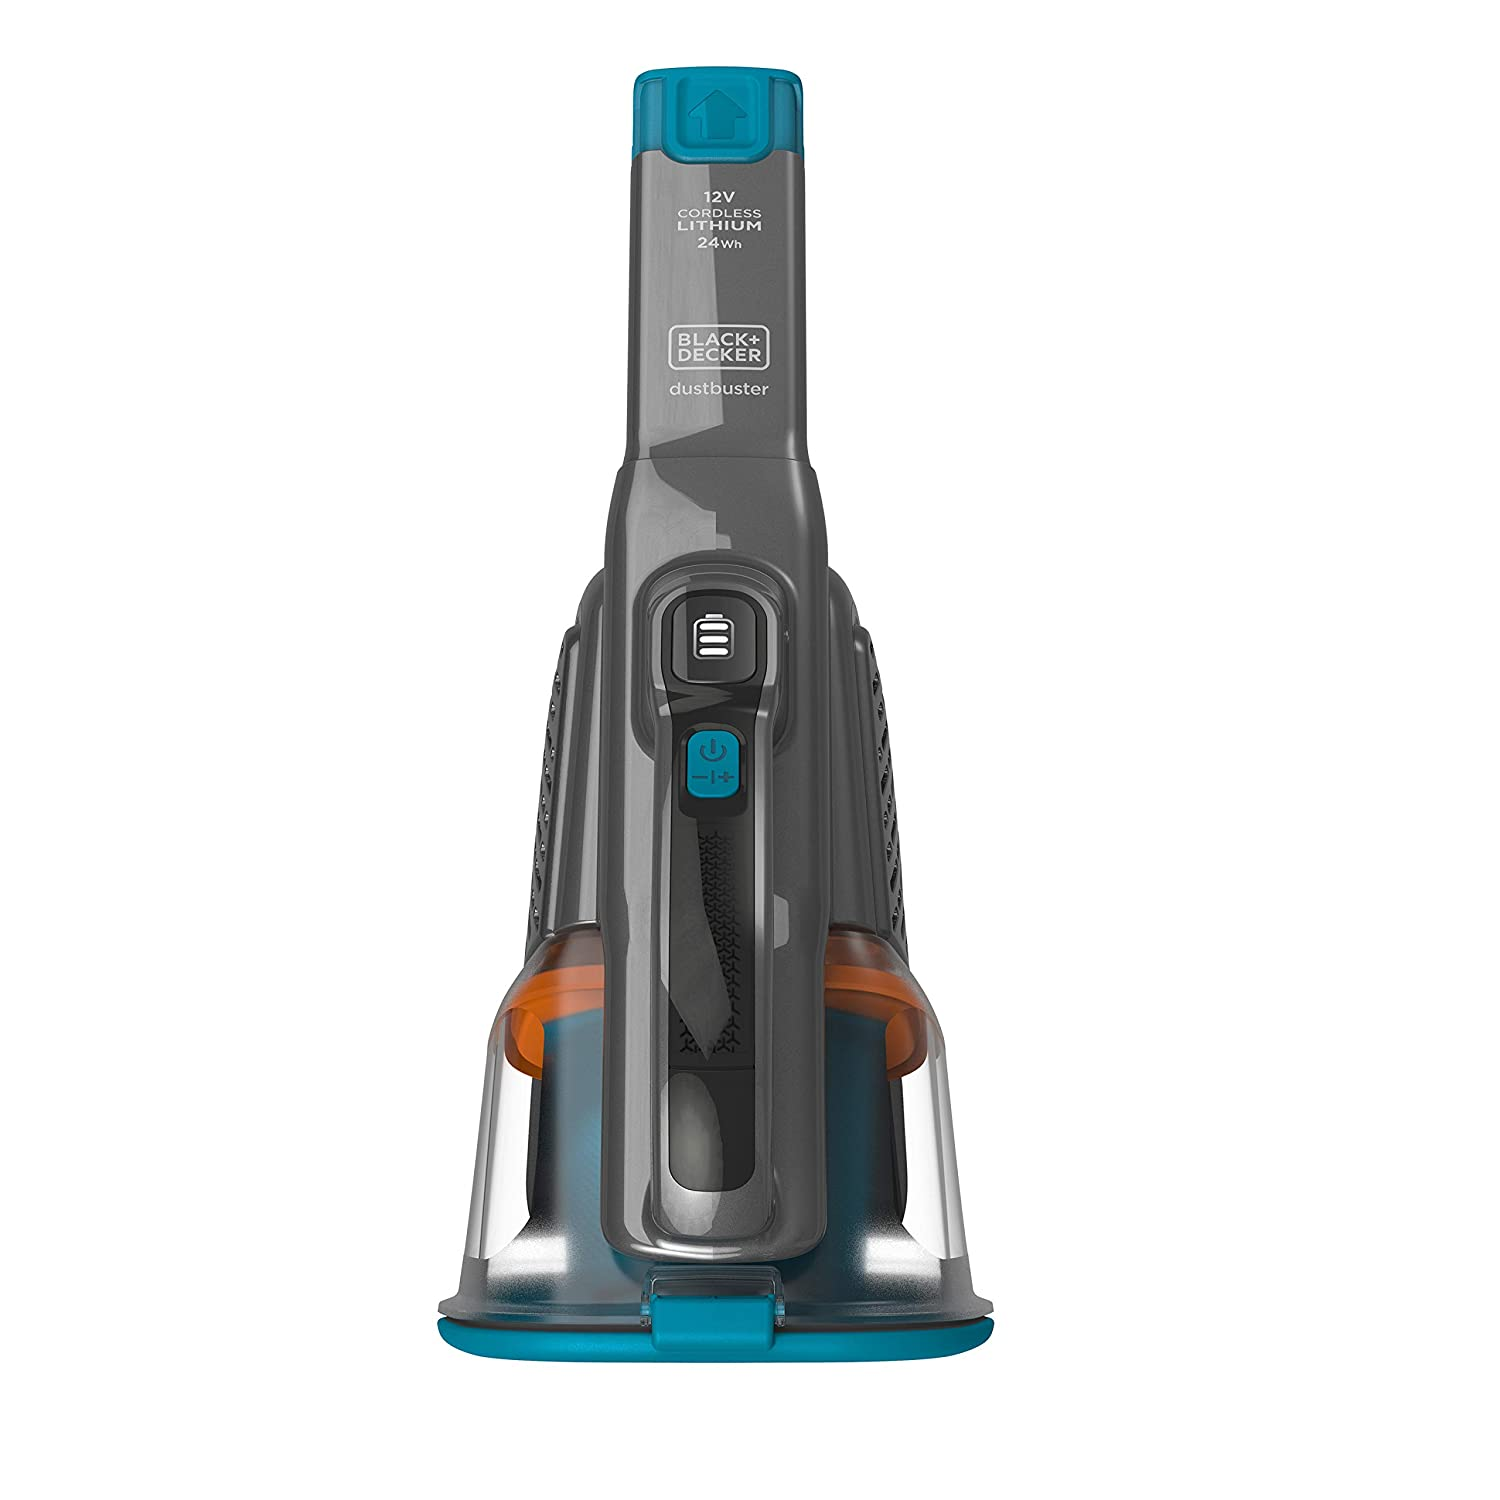 Black & Decker Aspiradora: Amazon.es: Hogar